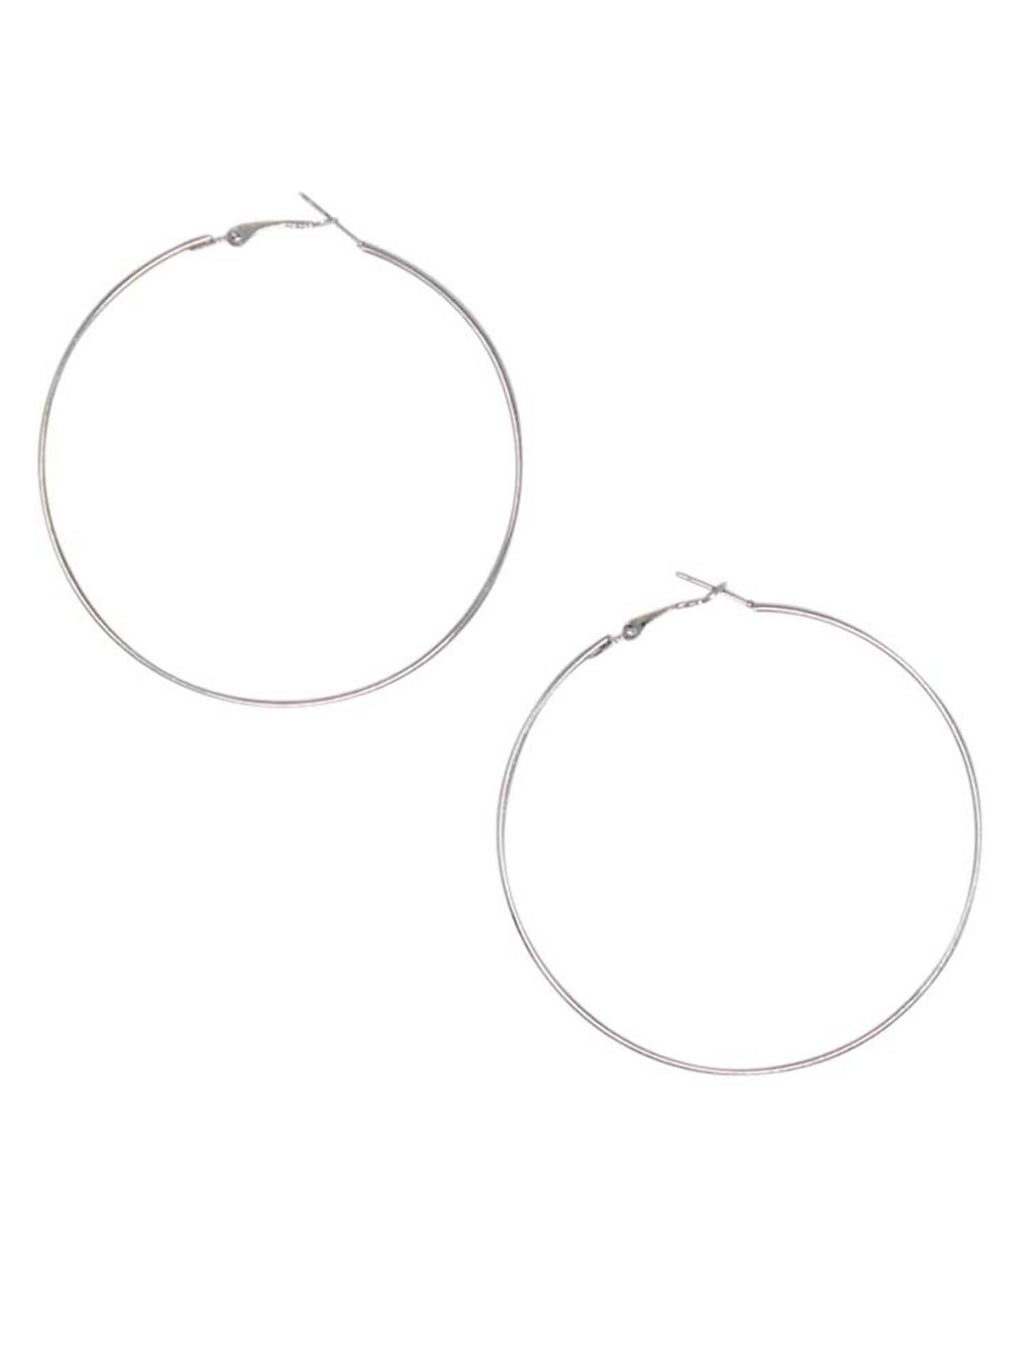 Oversized Classic Silver Metal Hoop Earrings